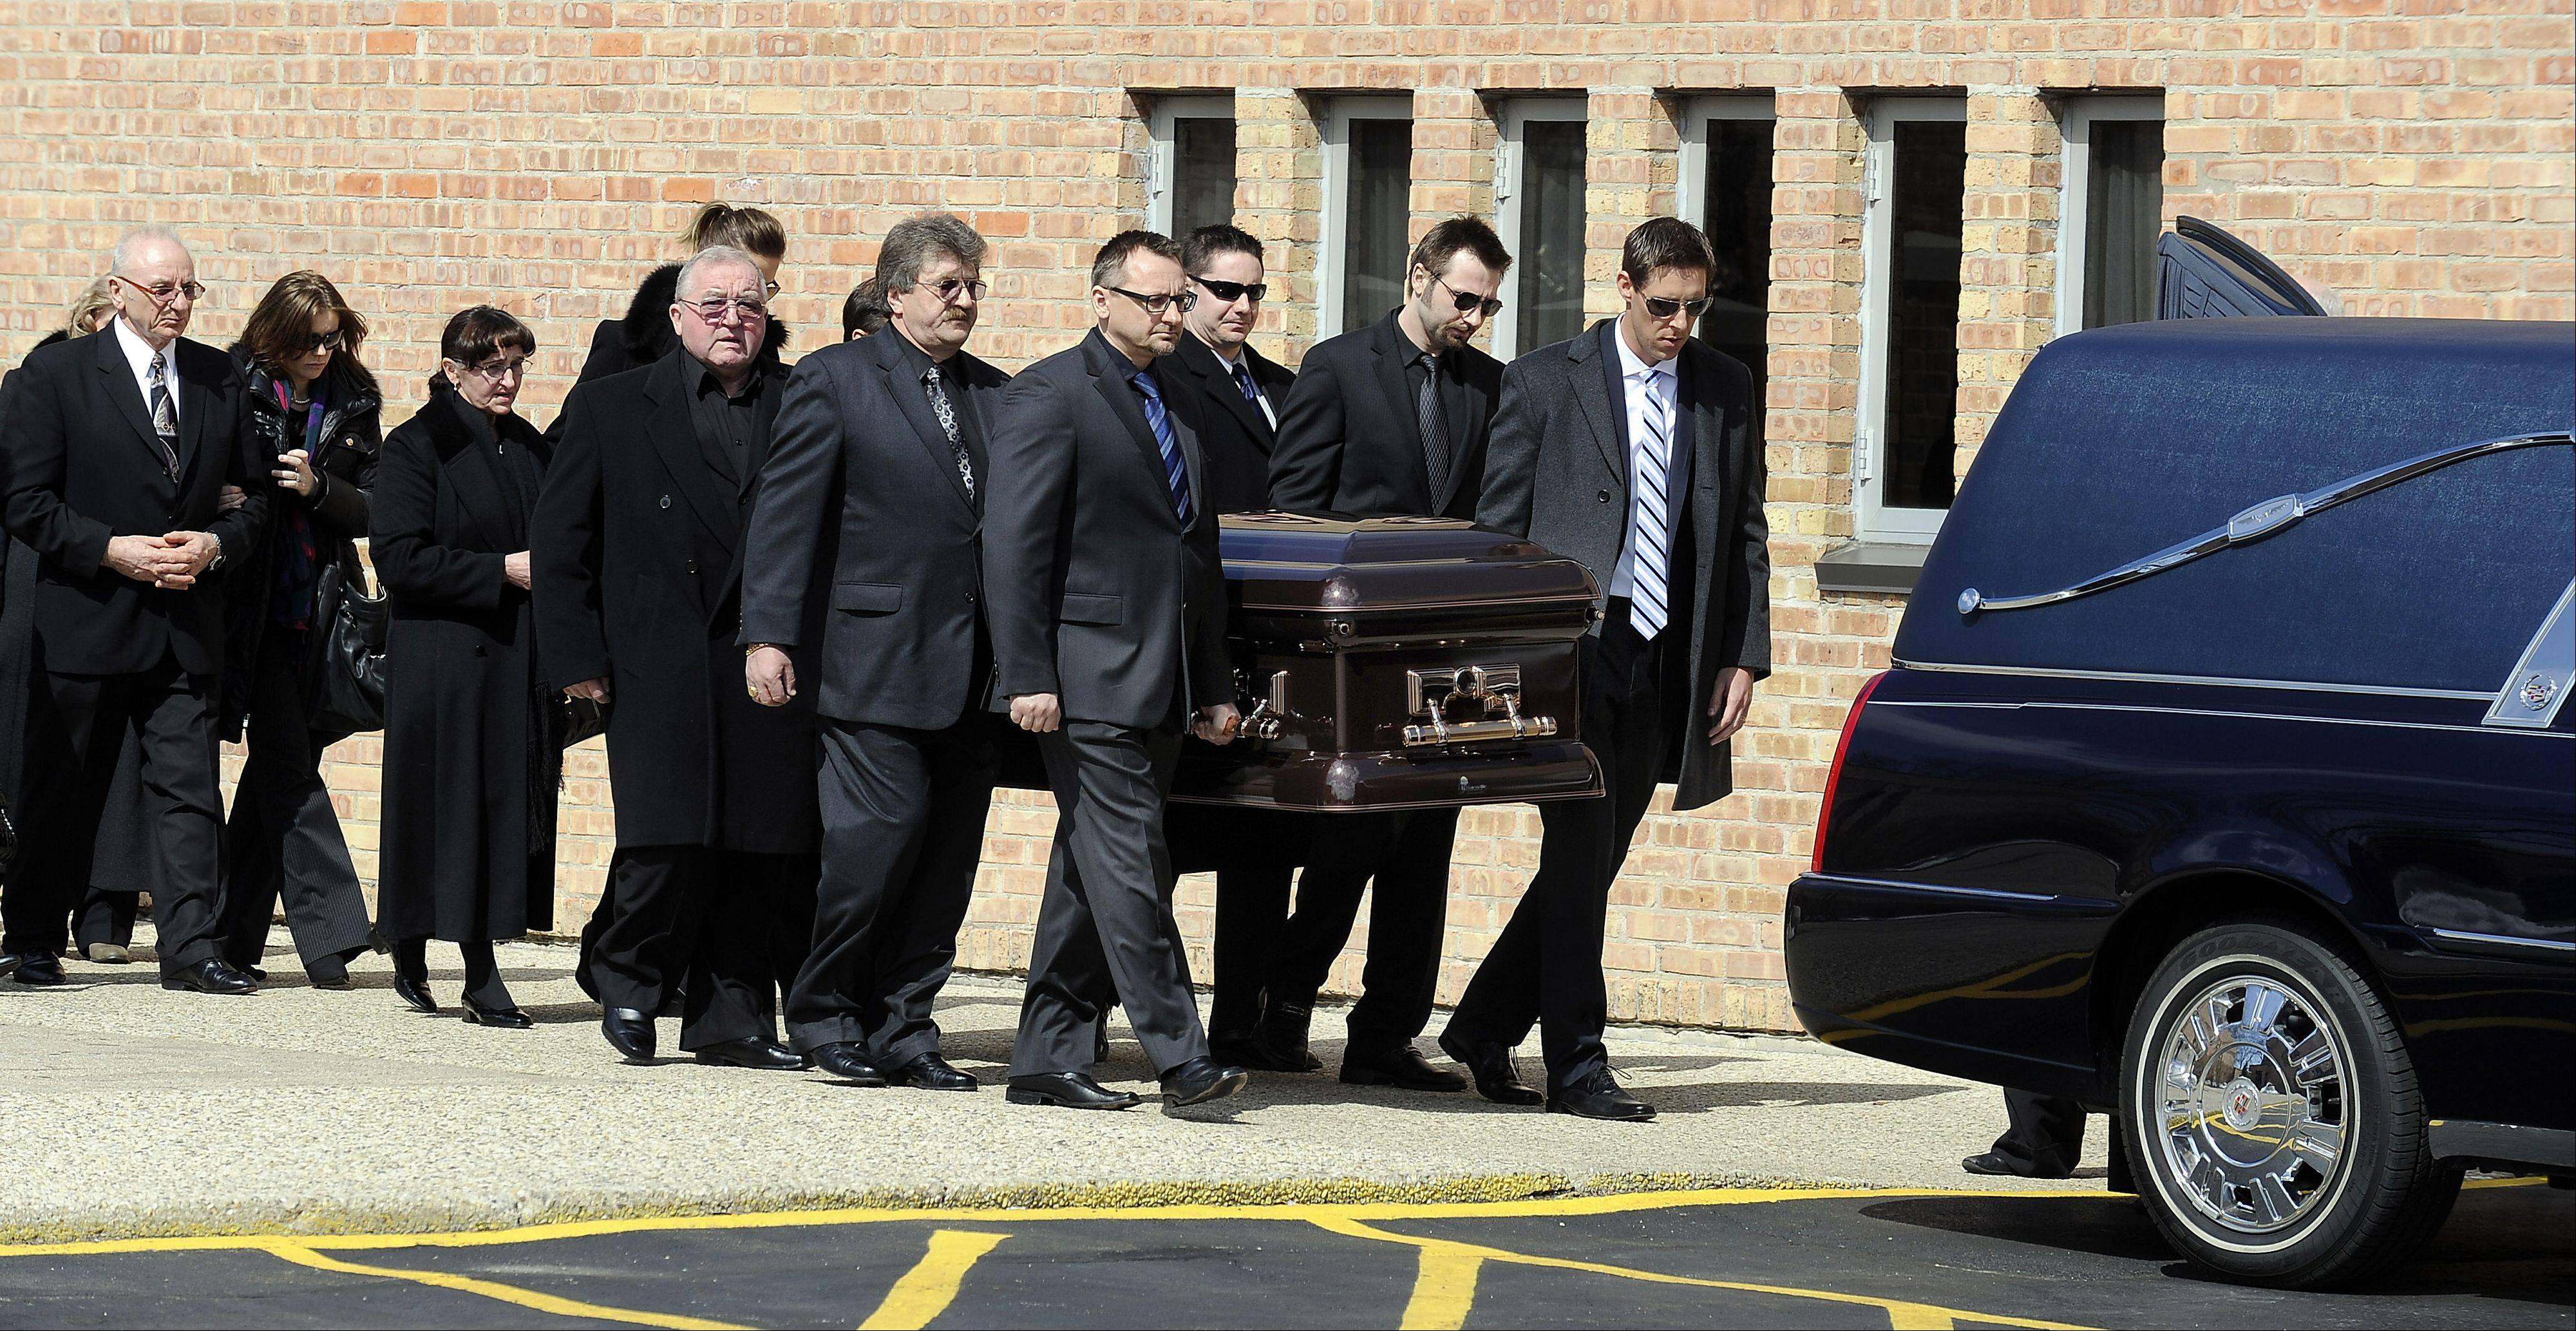 Pallbearers carry out the casket of Robert Komosa as his mother, Barbara, follows after his funeral service Saturday at St. Thomas Becket Church in Mt. Prospect.